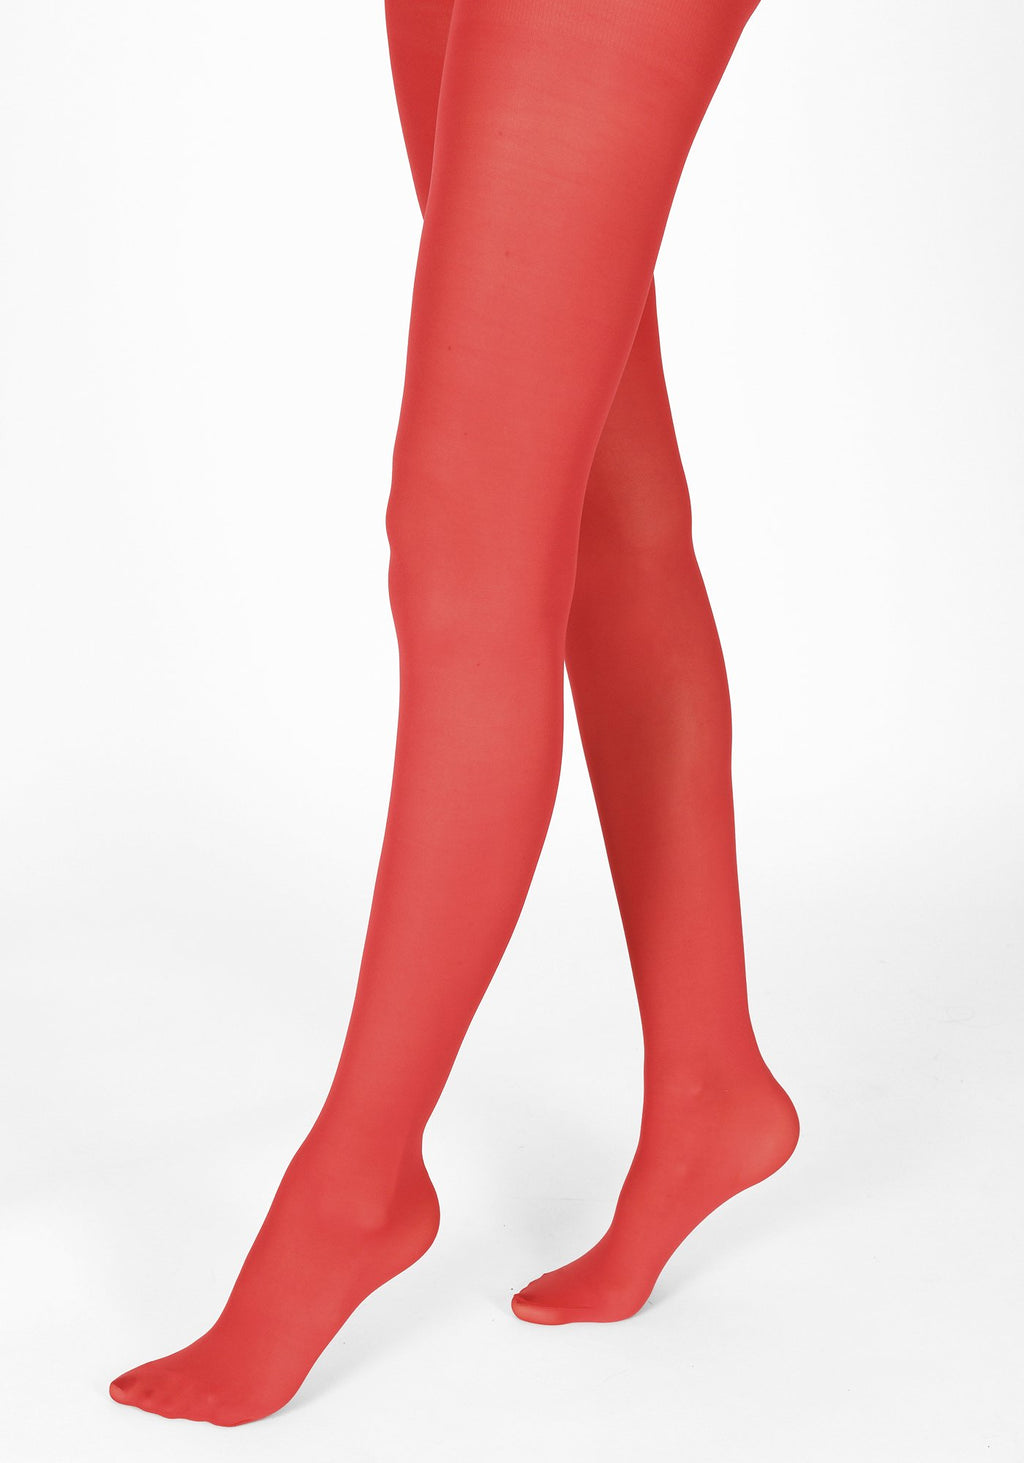 poppy red tights 40 denier 1